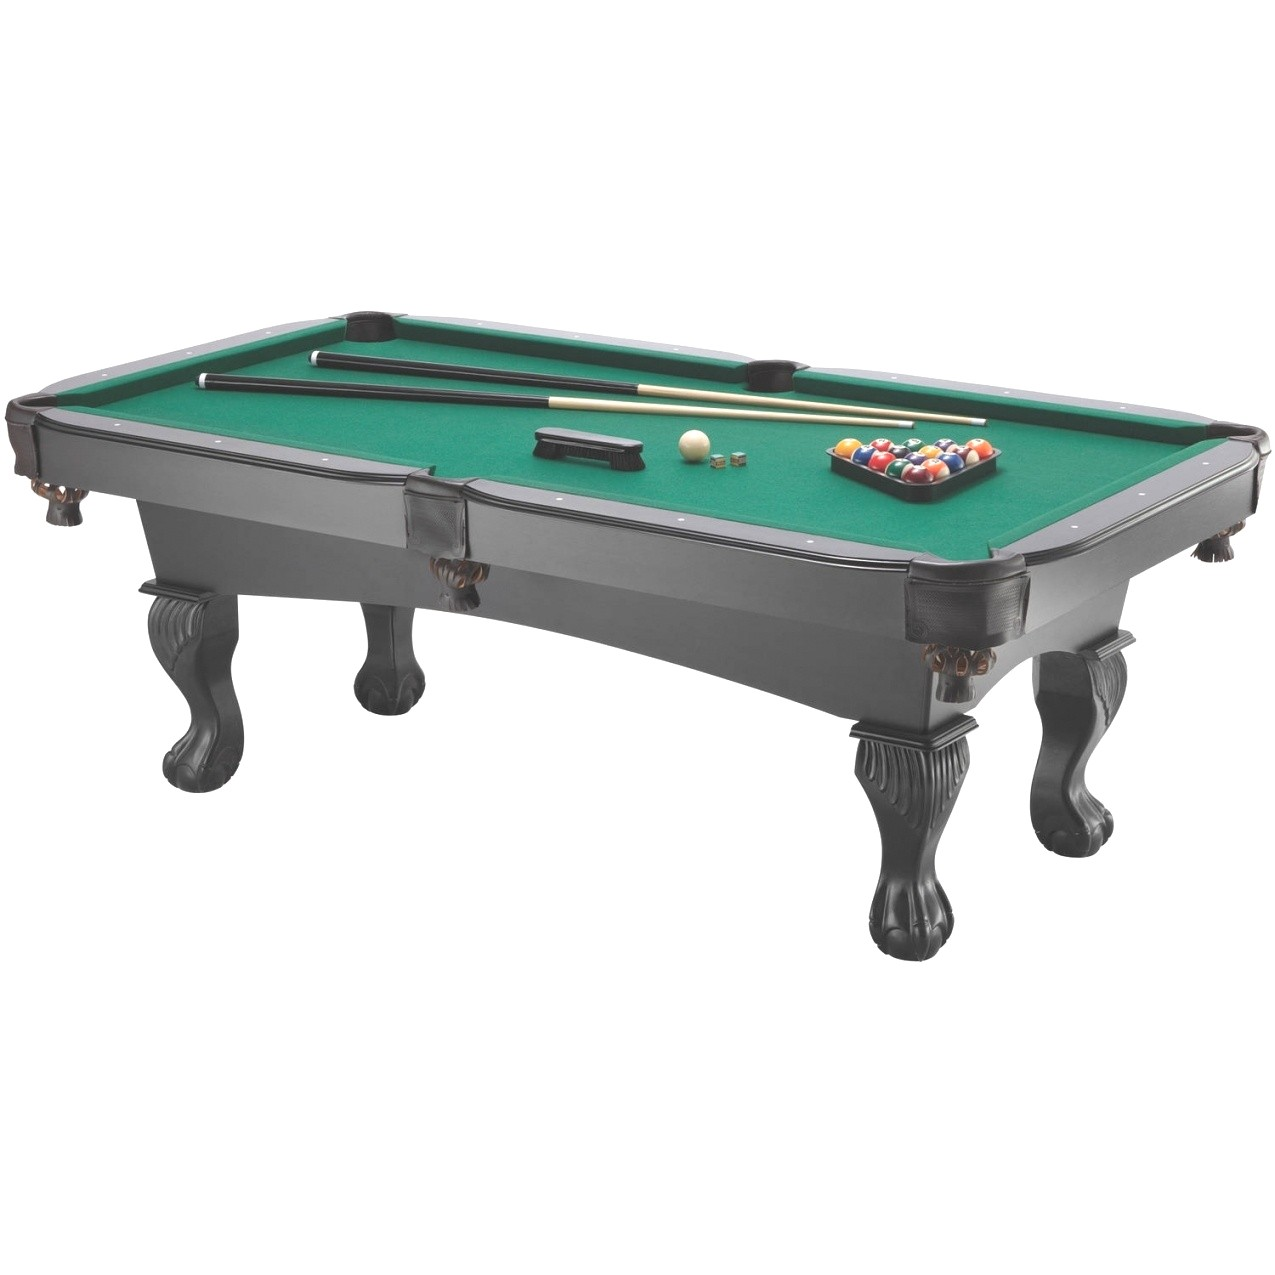 Pool Table Covers Walmart Ten Disadvantages Of Pool Table Cover Table Covers Depot